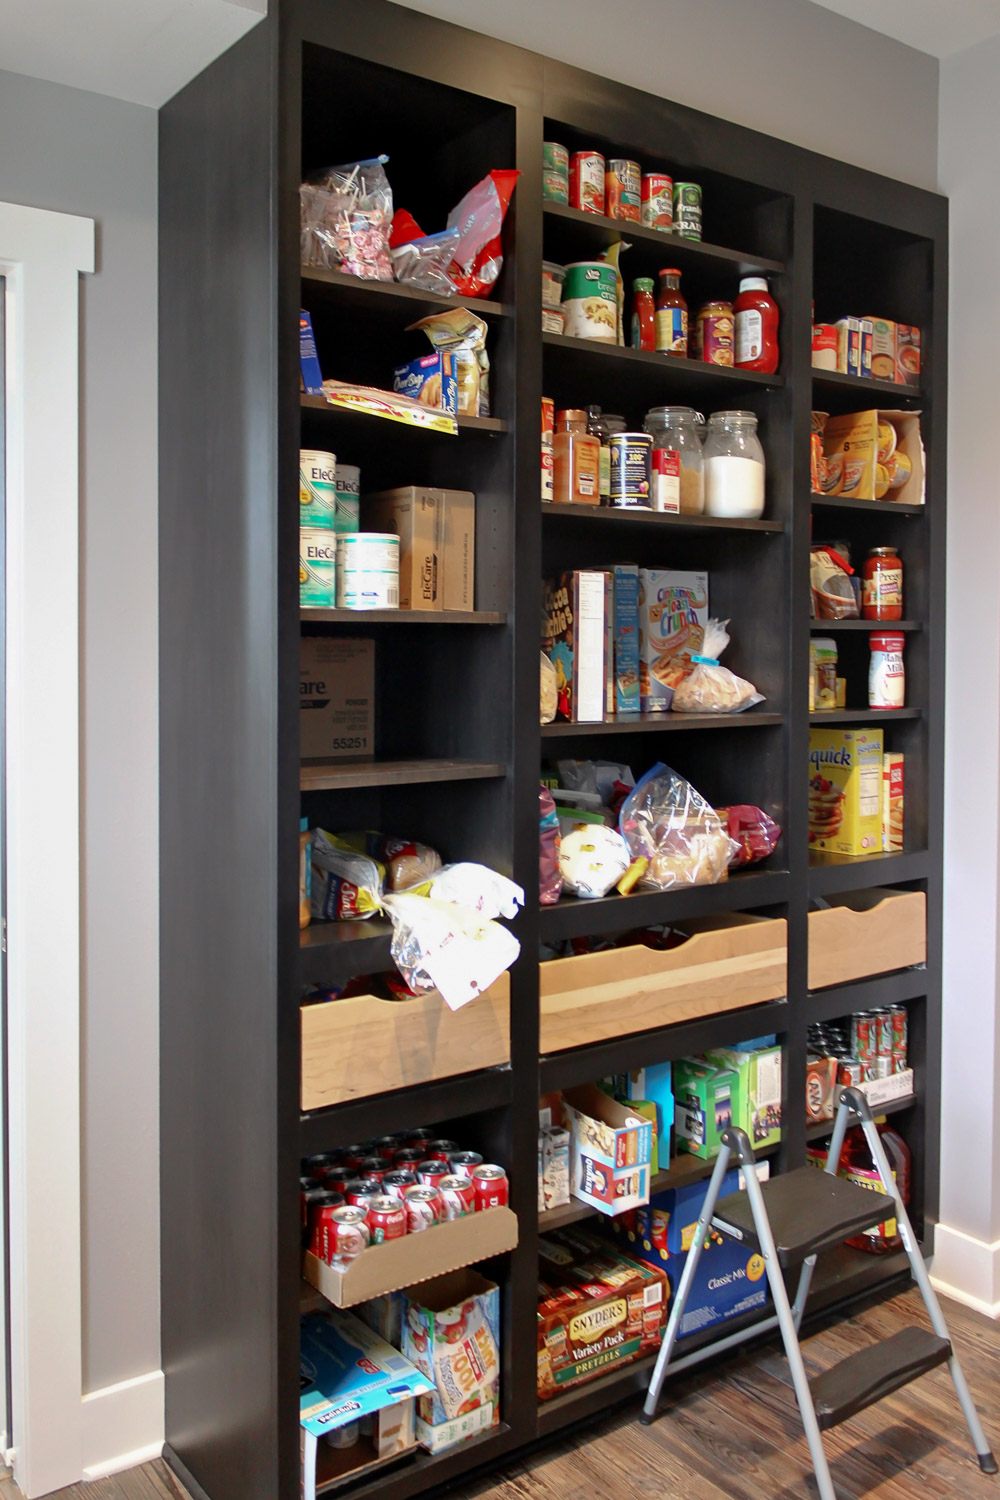 - A large pantry can make for a clean and clutter free kitchen by keeping small appliances and other countertop items hidden but within easy reach.